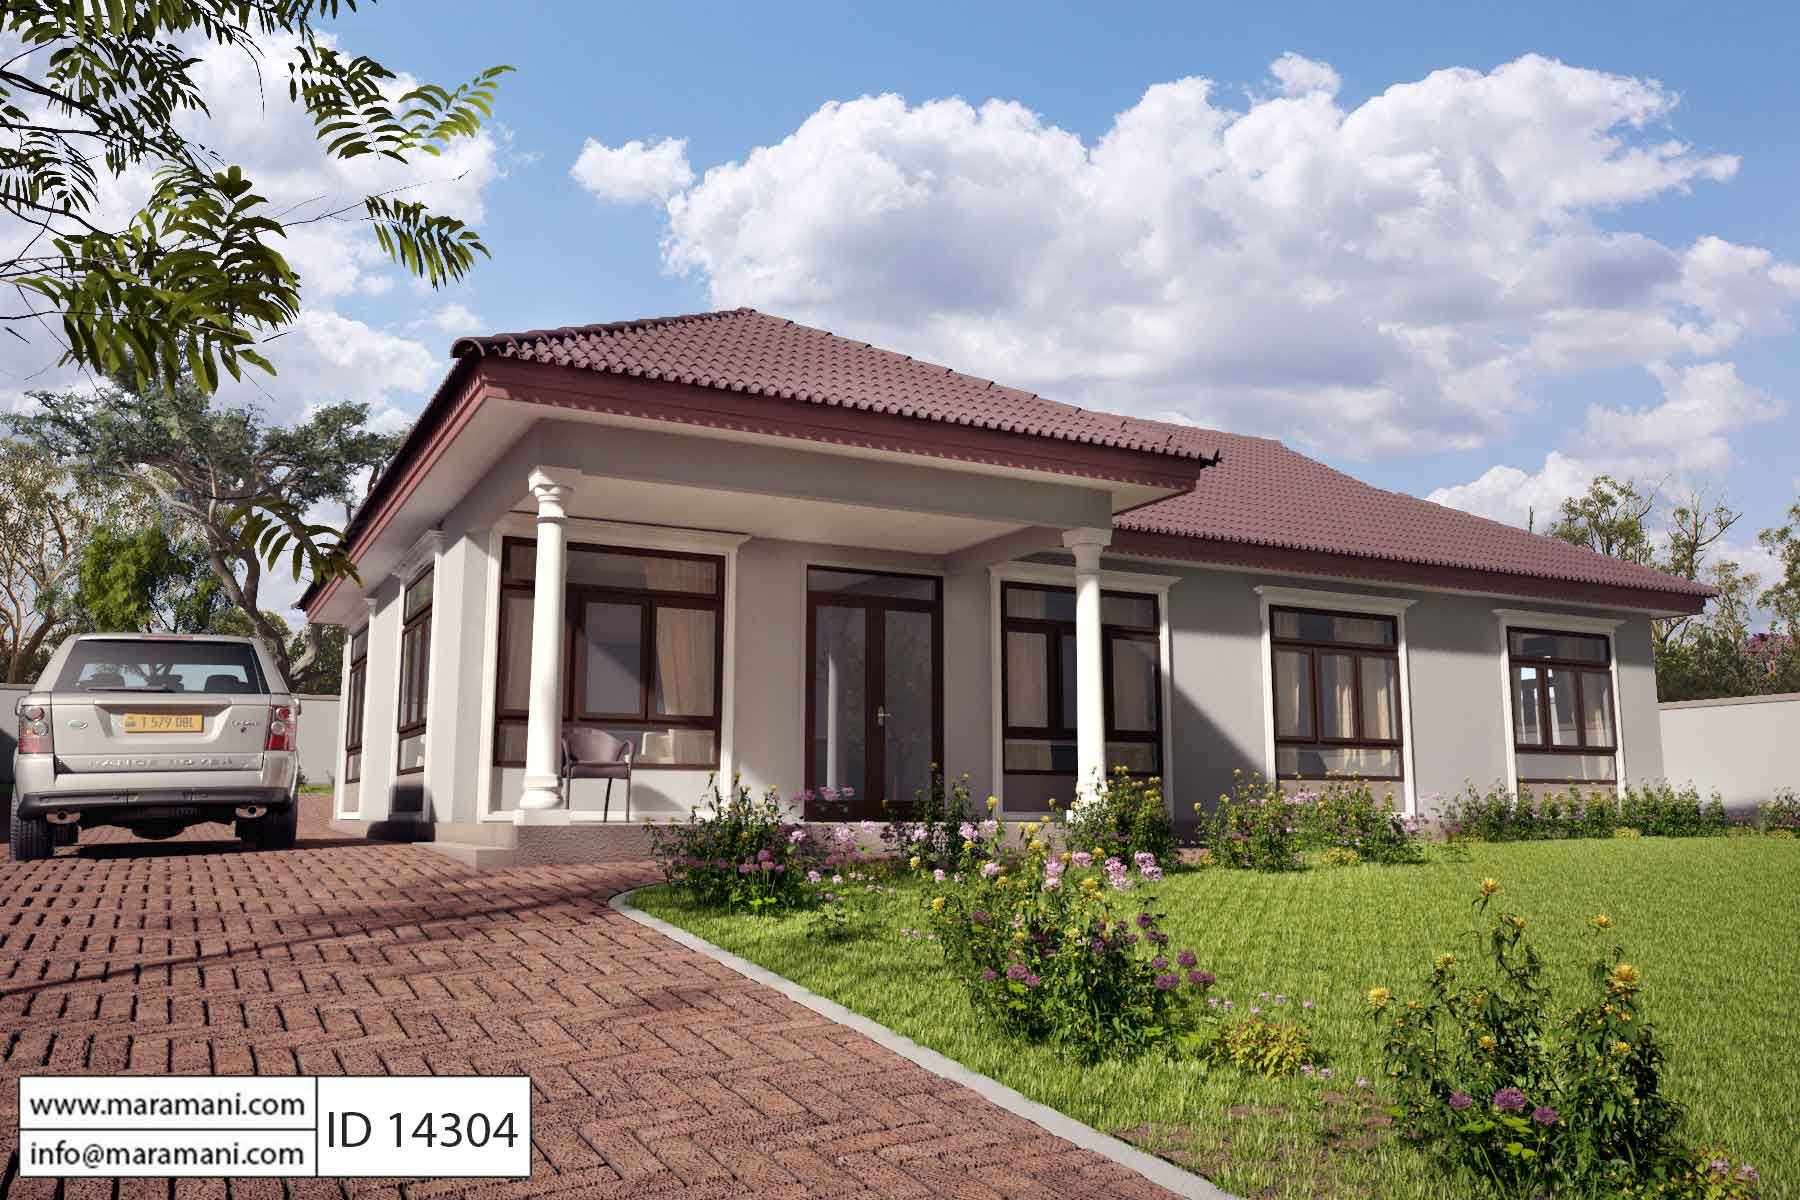 4 Bedroom House Plan Id 14304 House Plans By Maramani